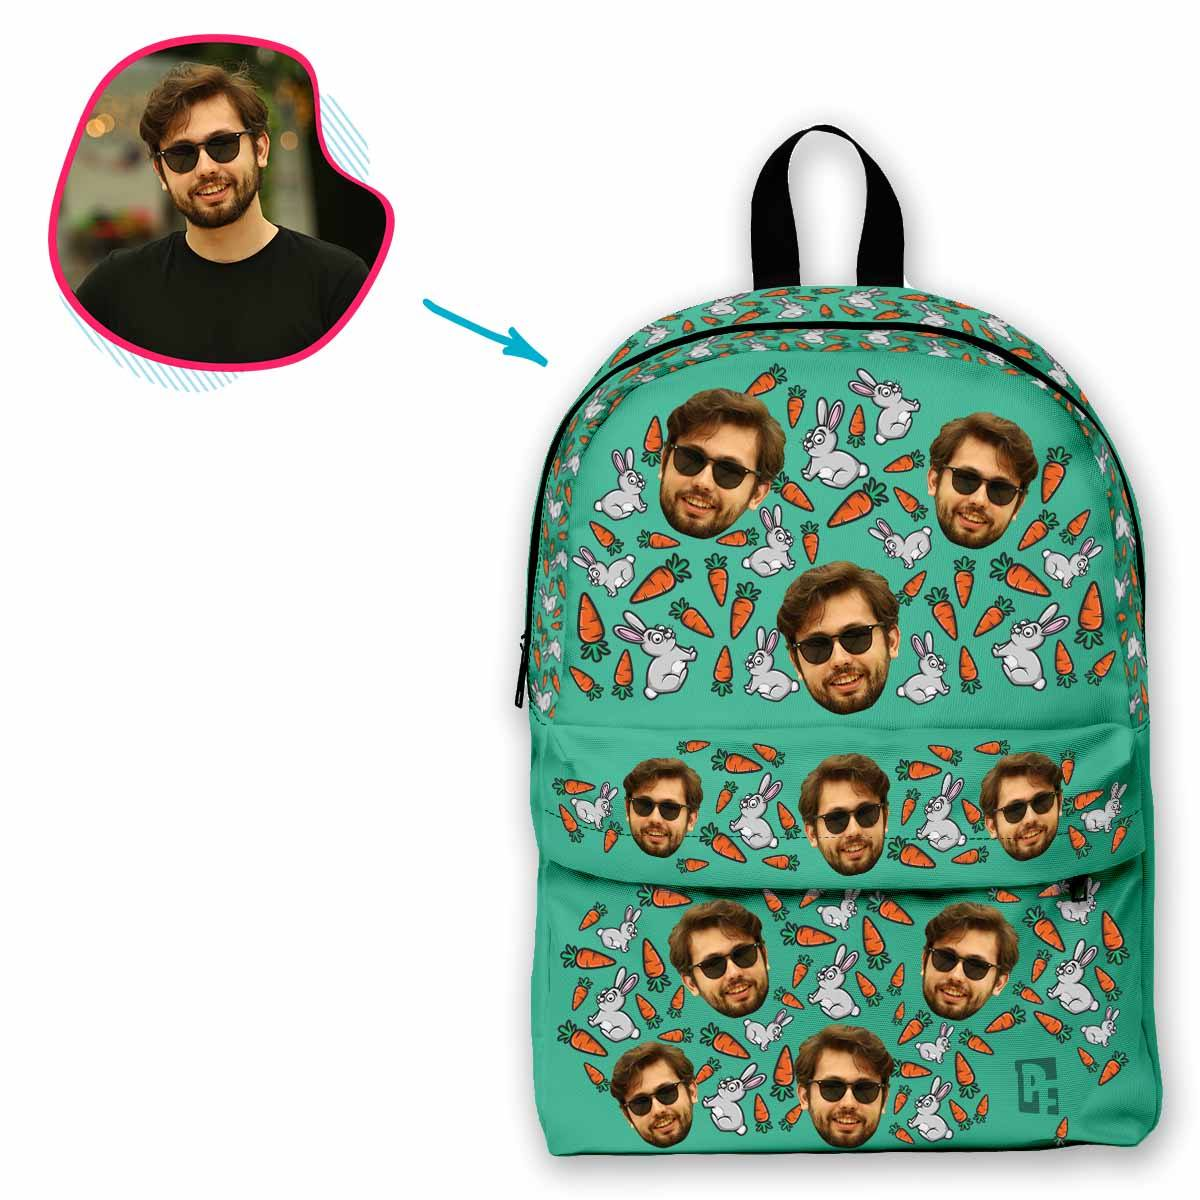 mint Bunny classic backpack personalized with photo of face printed on it